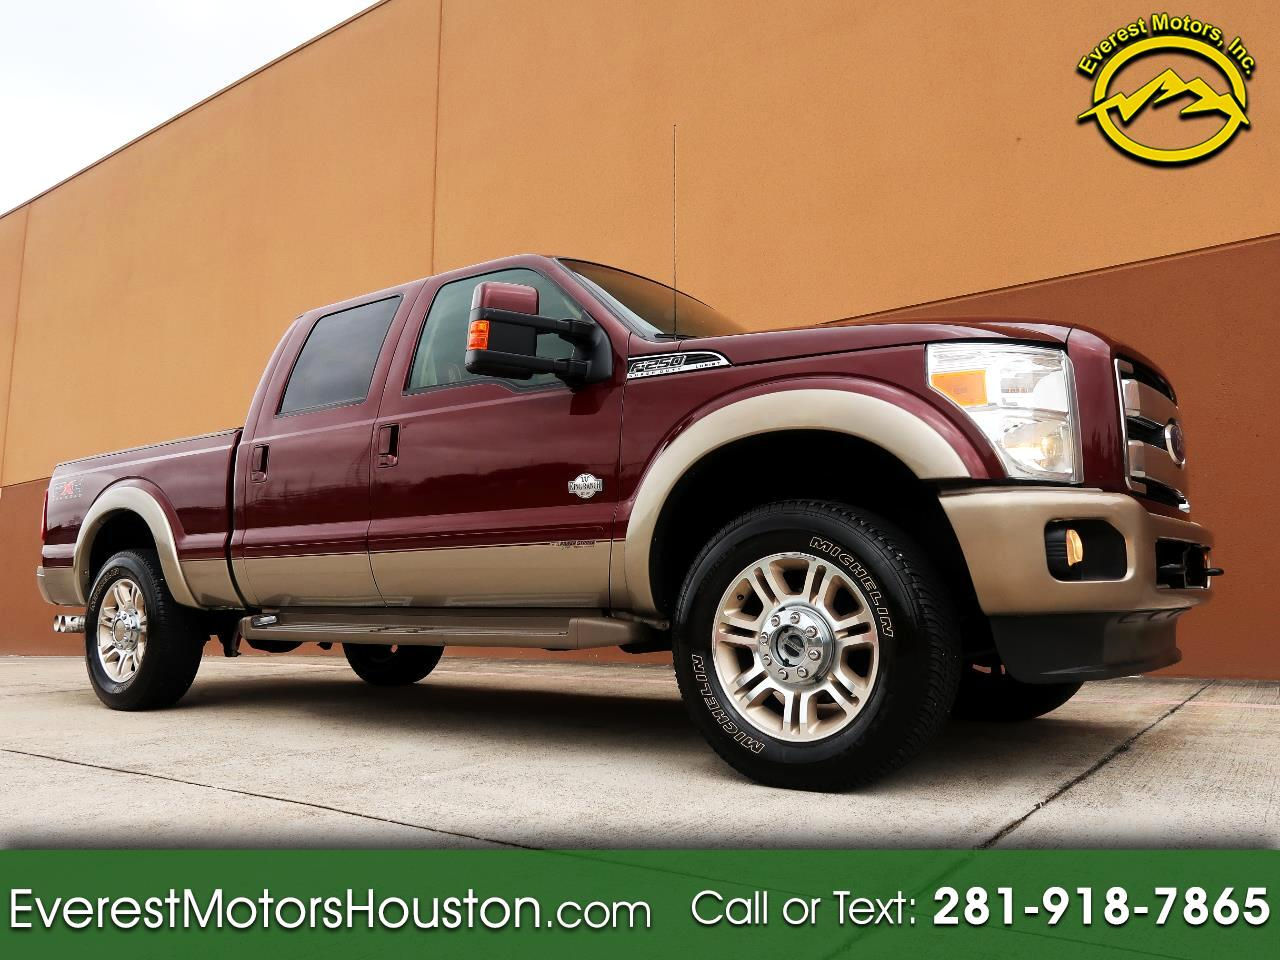 2011 Ford F-250 SD KING RANCH CREW CAB SHORT BED 4WD NAV CAM ROOF